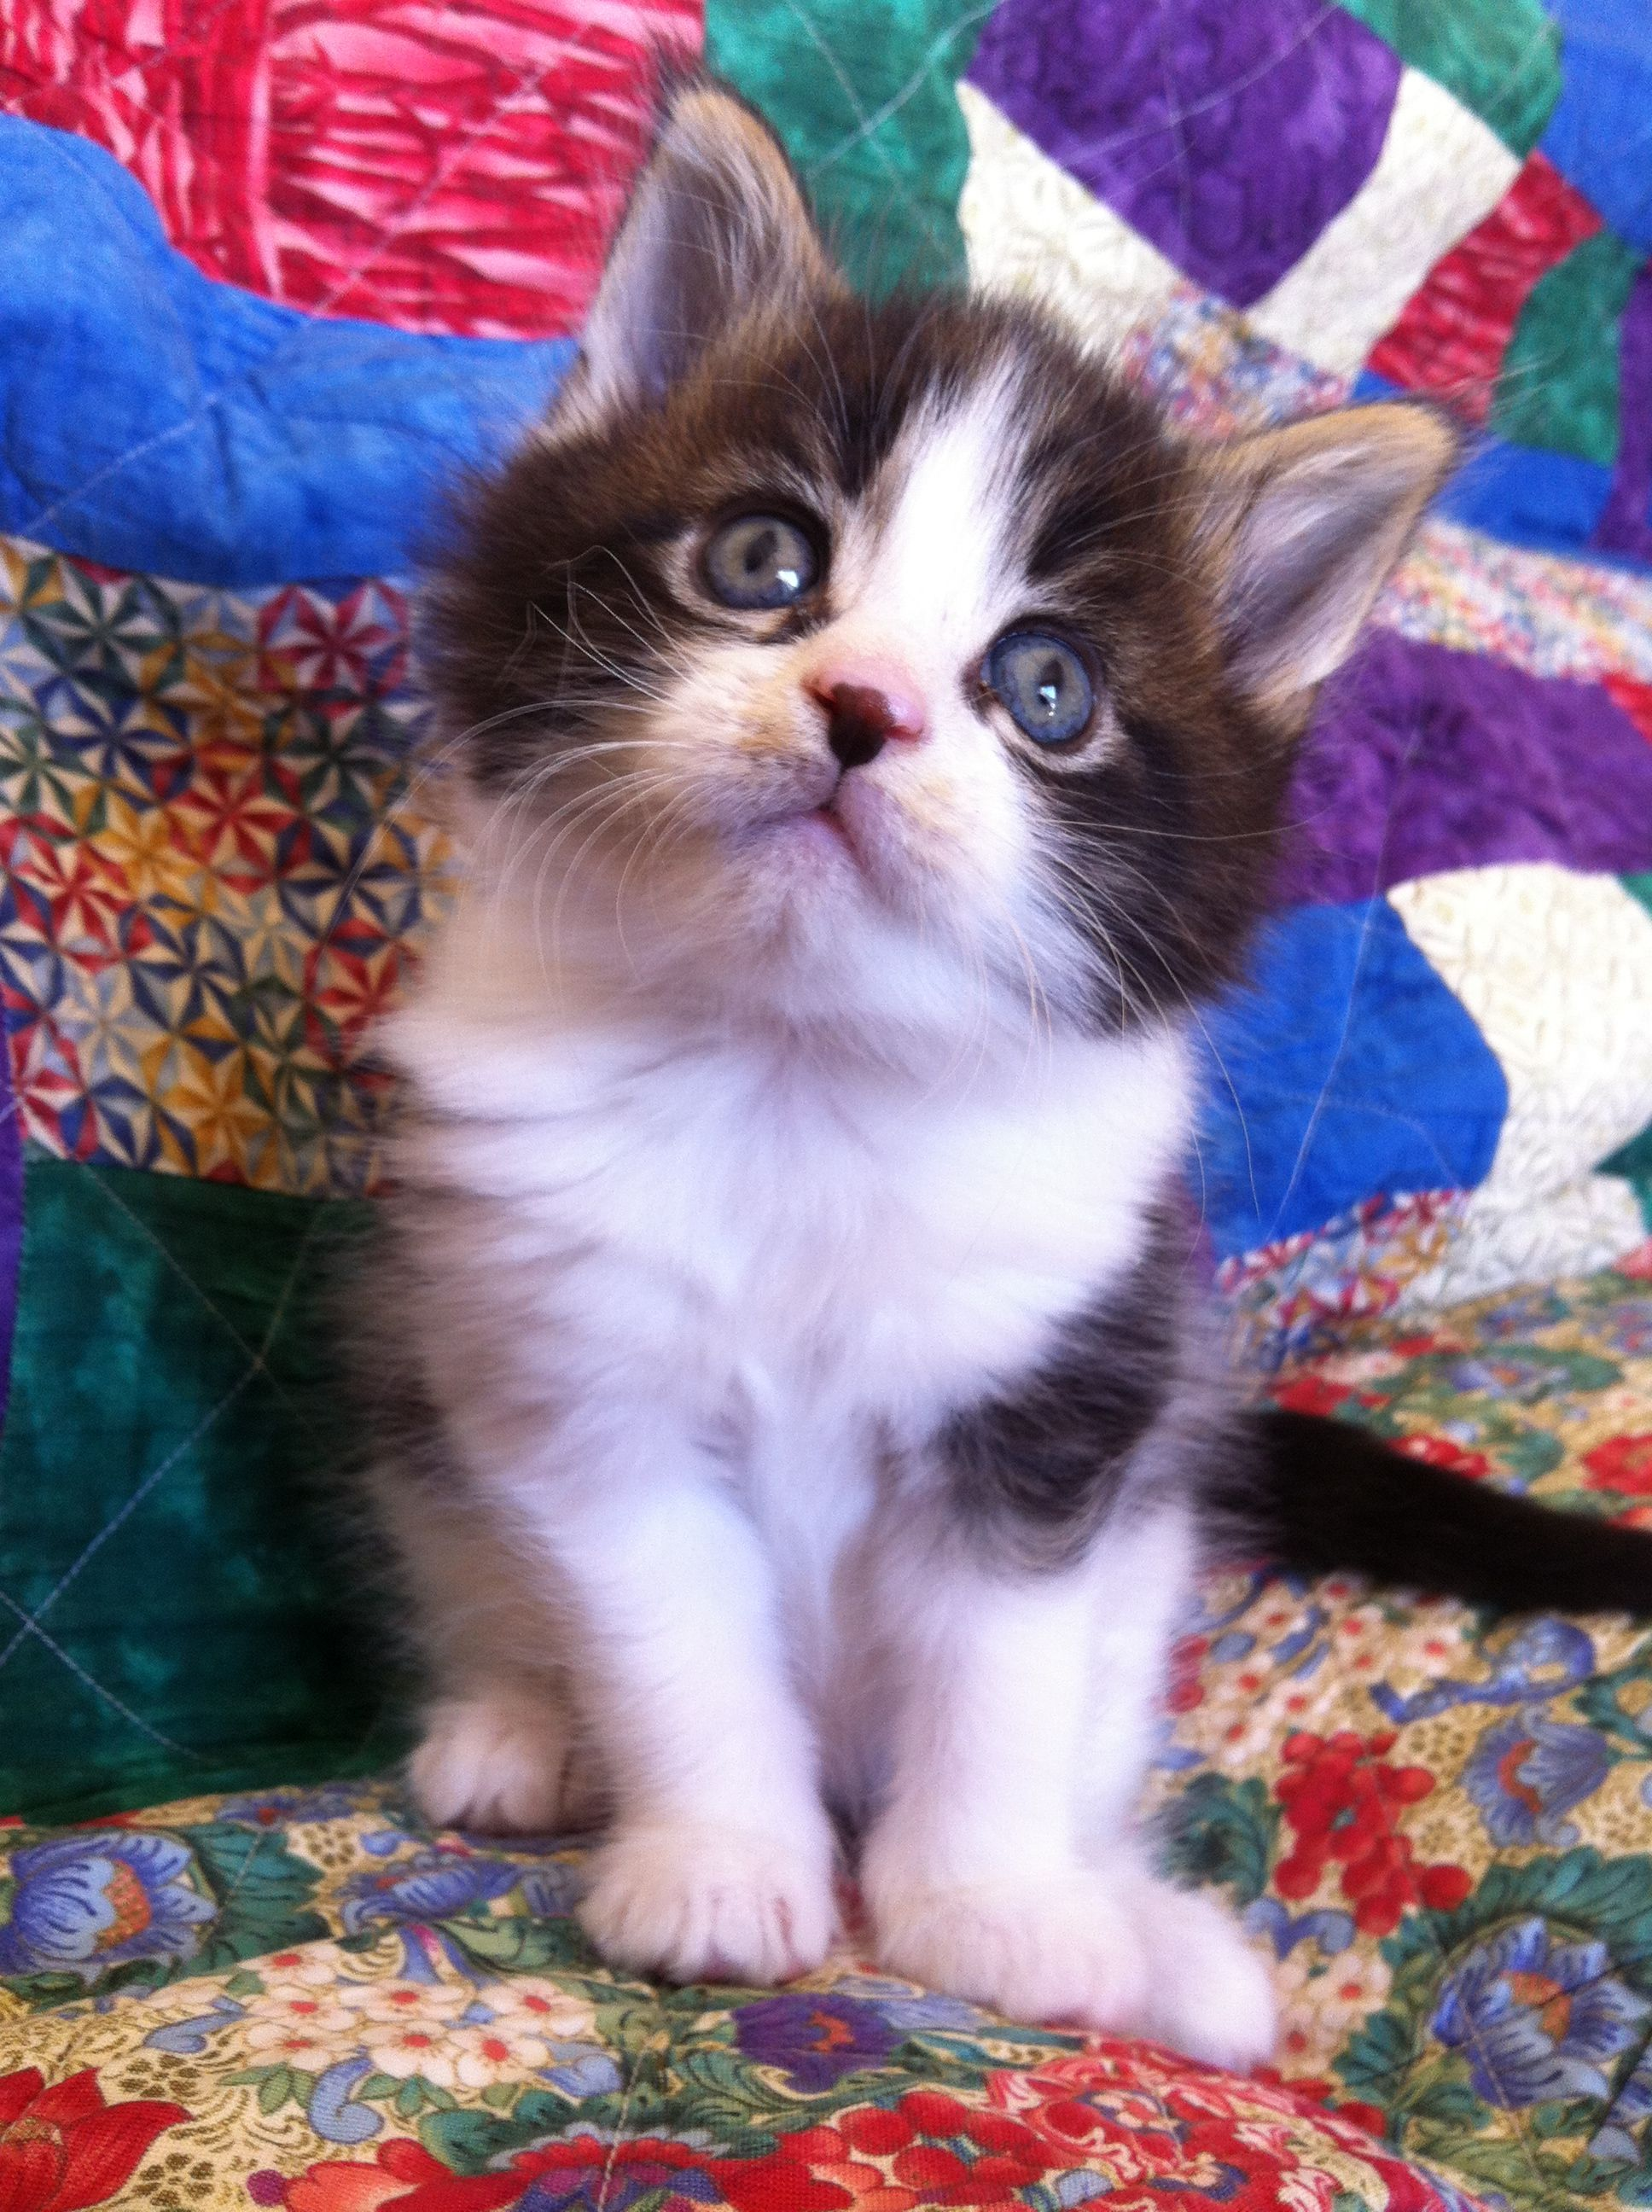 Manns Cattery Maine Cats Kittens For Ormond Beach Florida